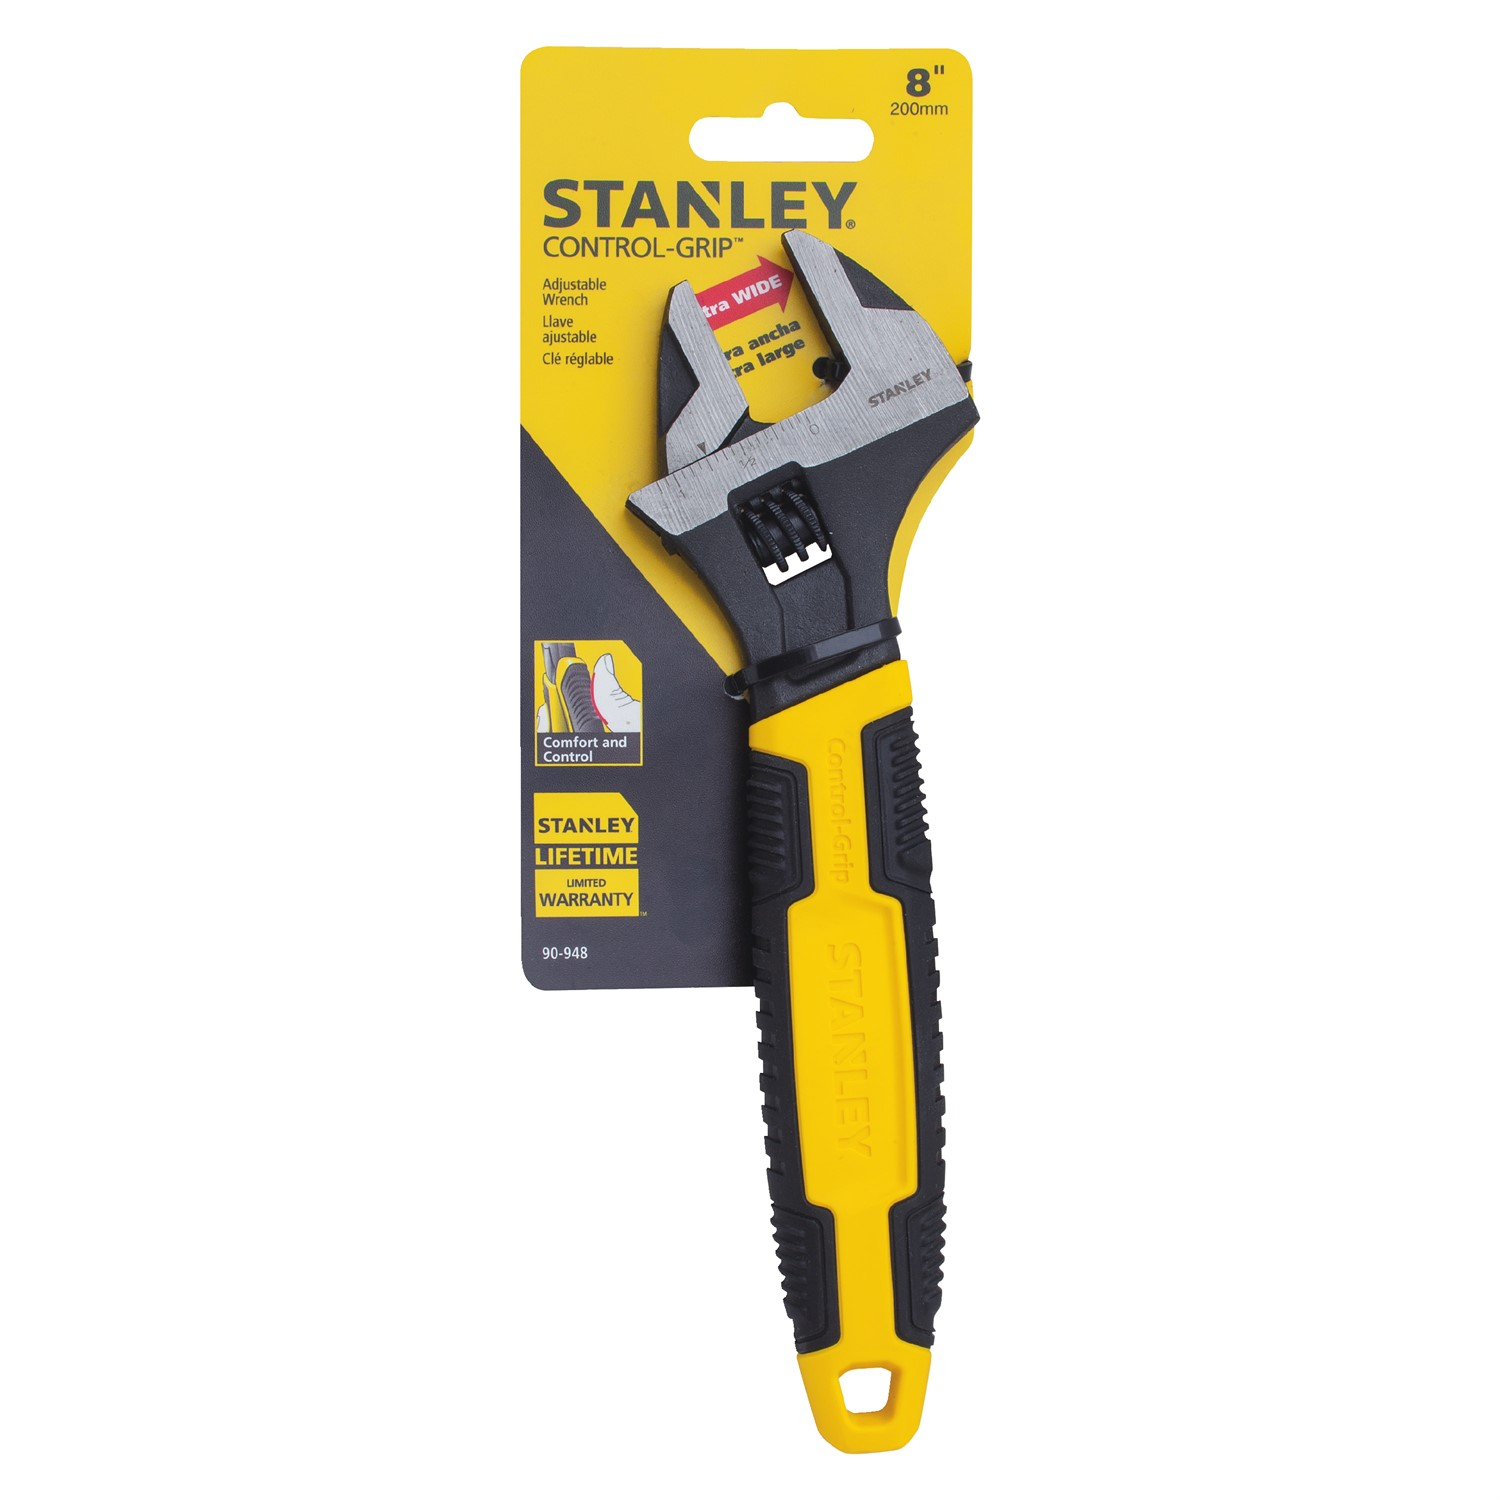 STANLEY 90-948 - 8'' Adjustable Wrench